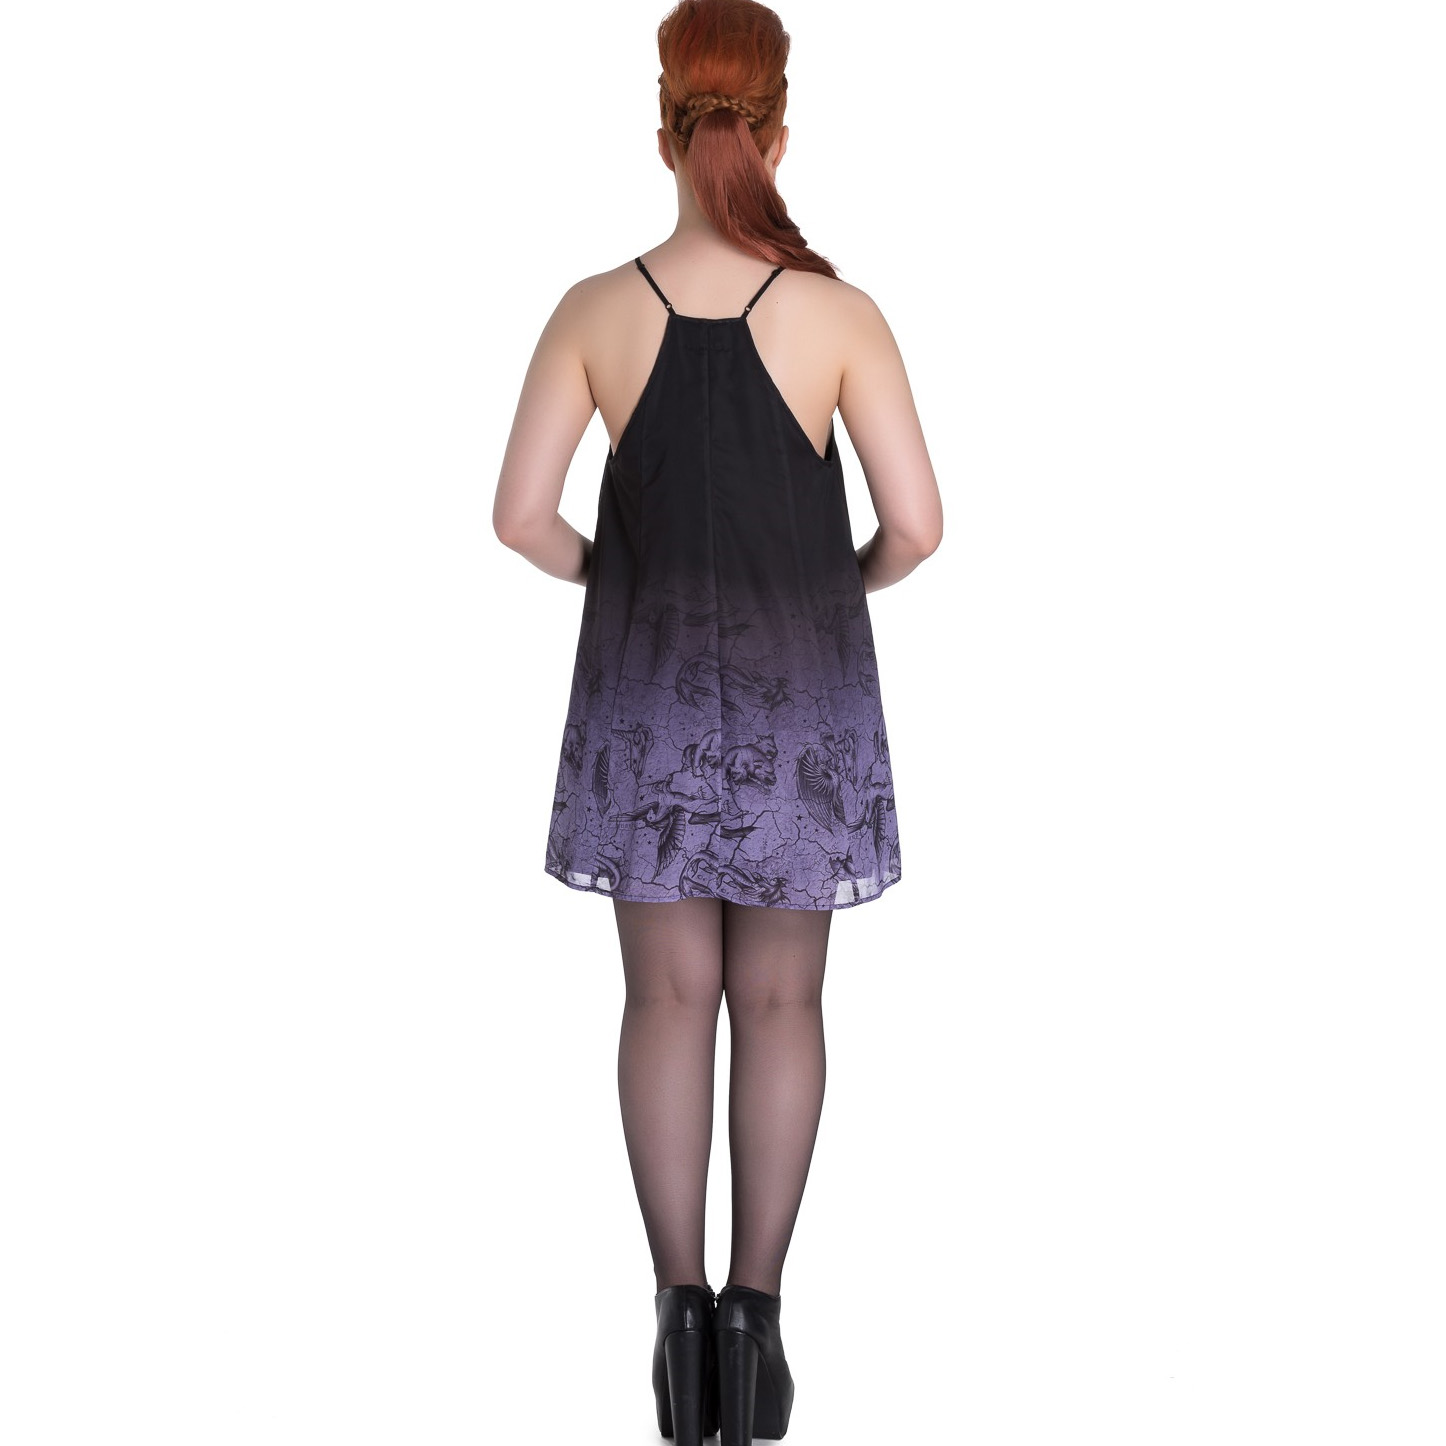 Hell-Bunny-Spin-Doctor-Goth-Lace-Up-Mini-Dress-EVADINE-Purple-Black-All-Sizes thumbnail 9